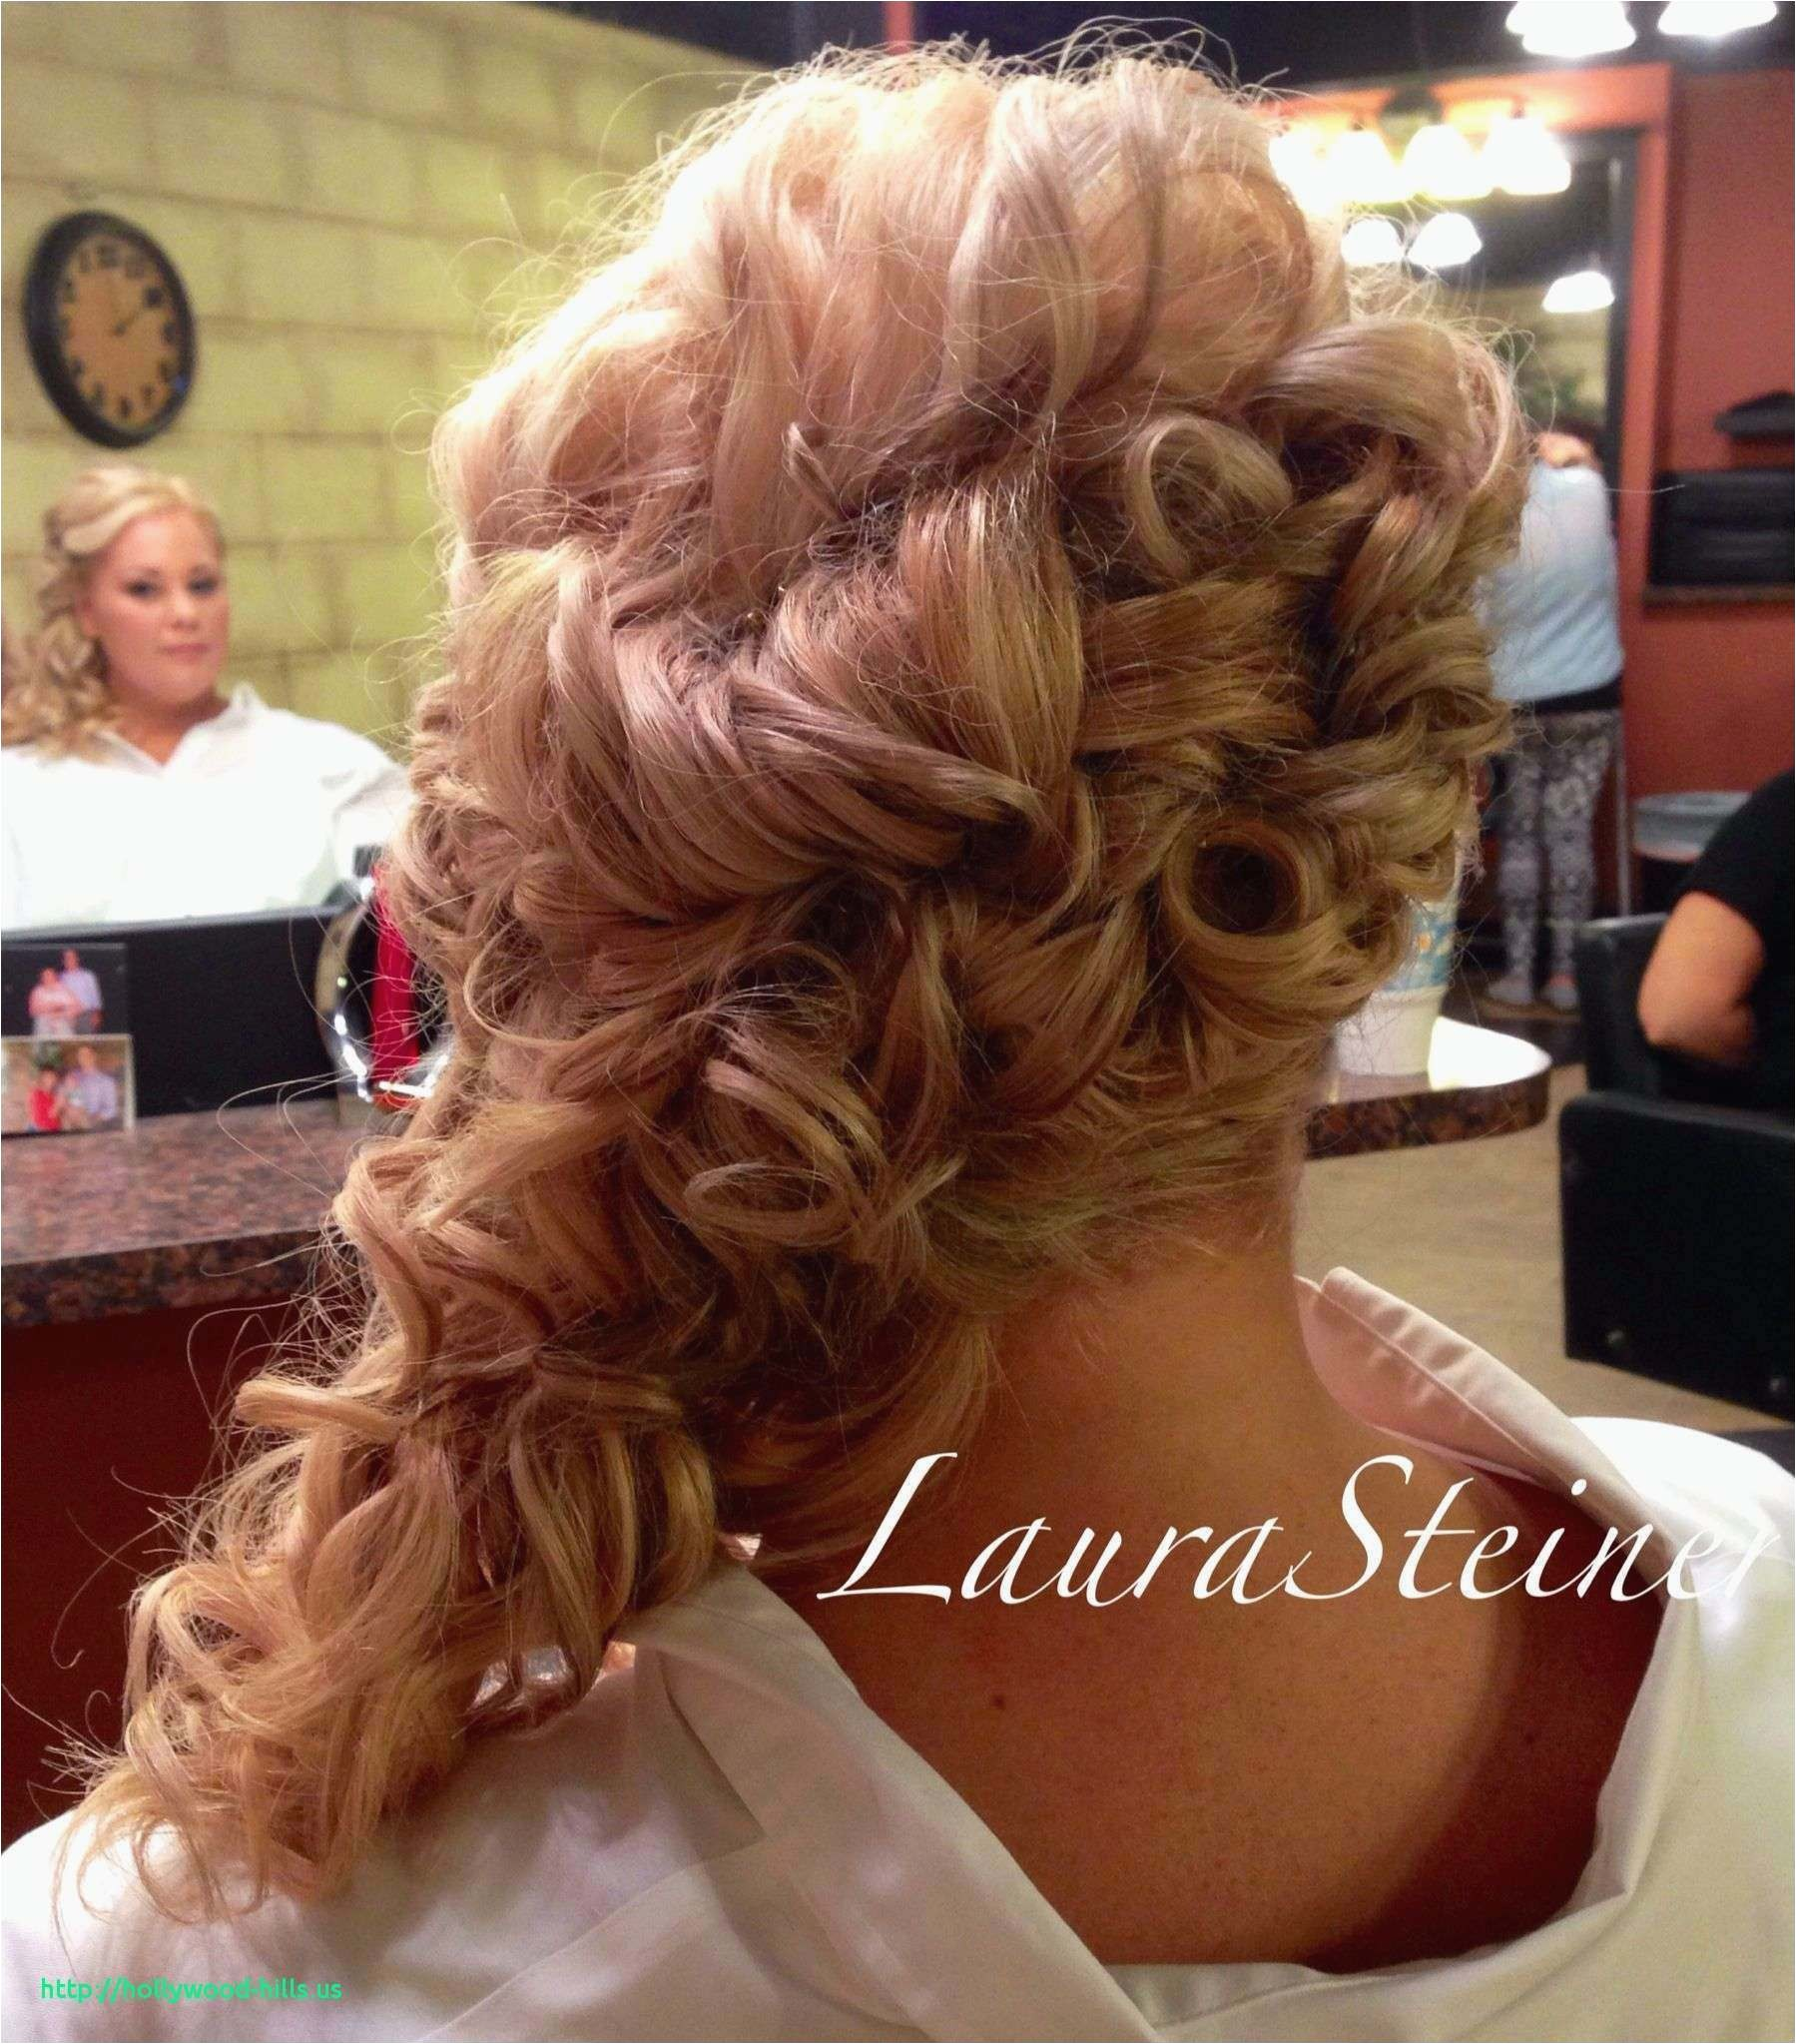 Elegant Formal Hairstyles with Curls Lovely Elegant evening Hairstyles for Long Hair Awesome Haircuts 0d Formal